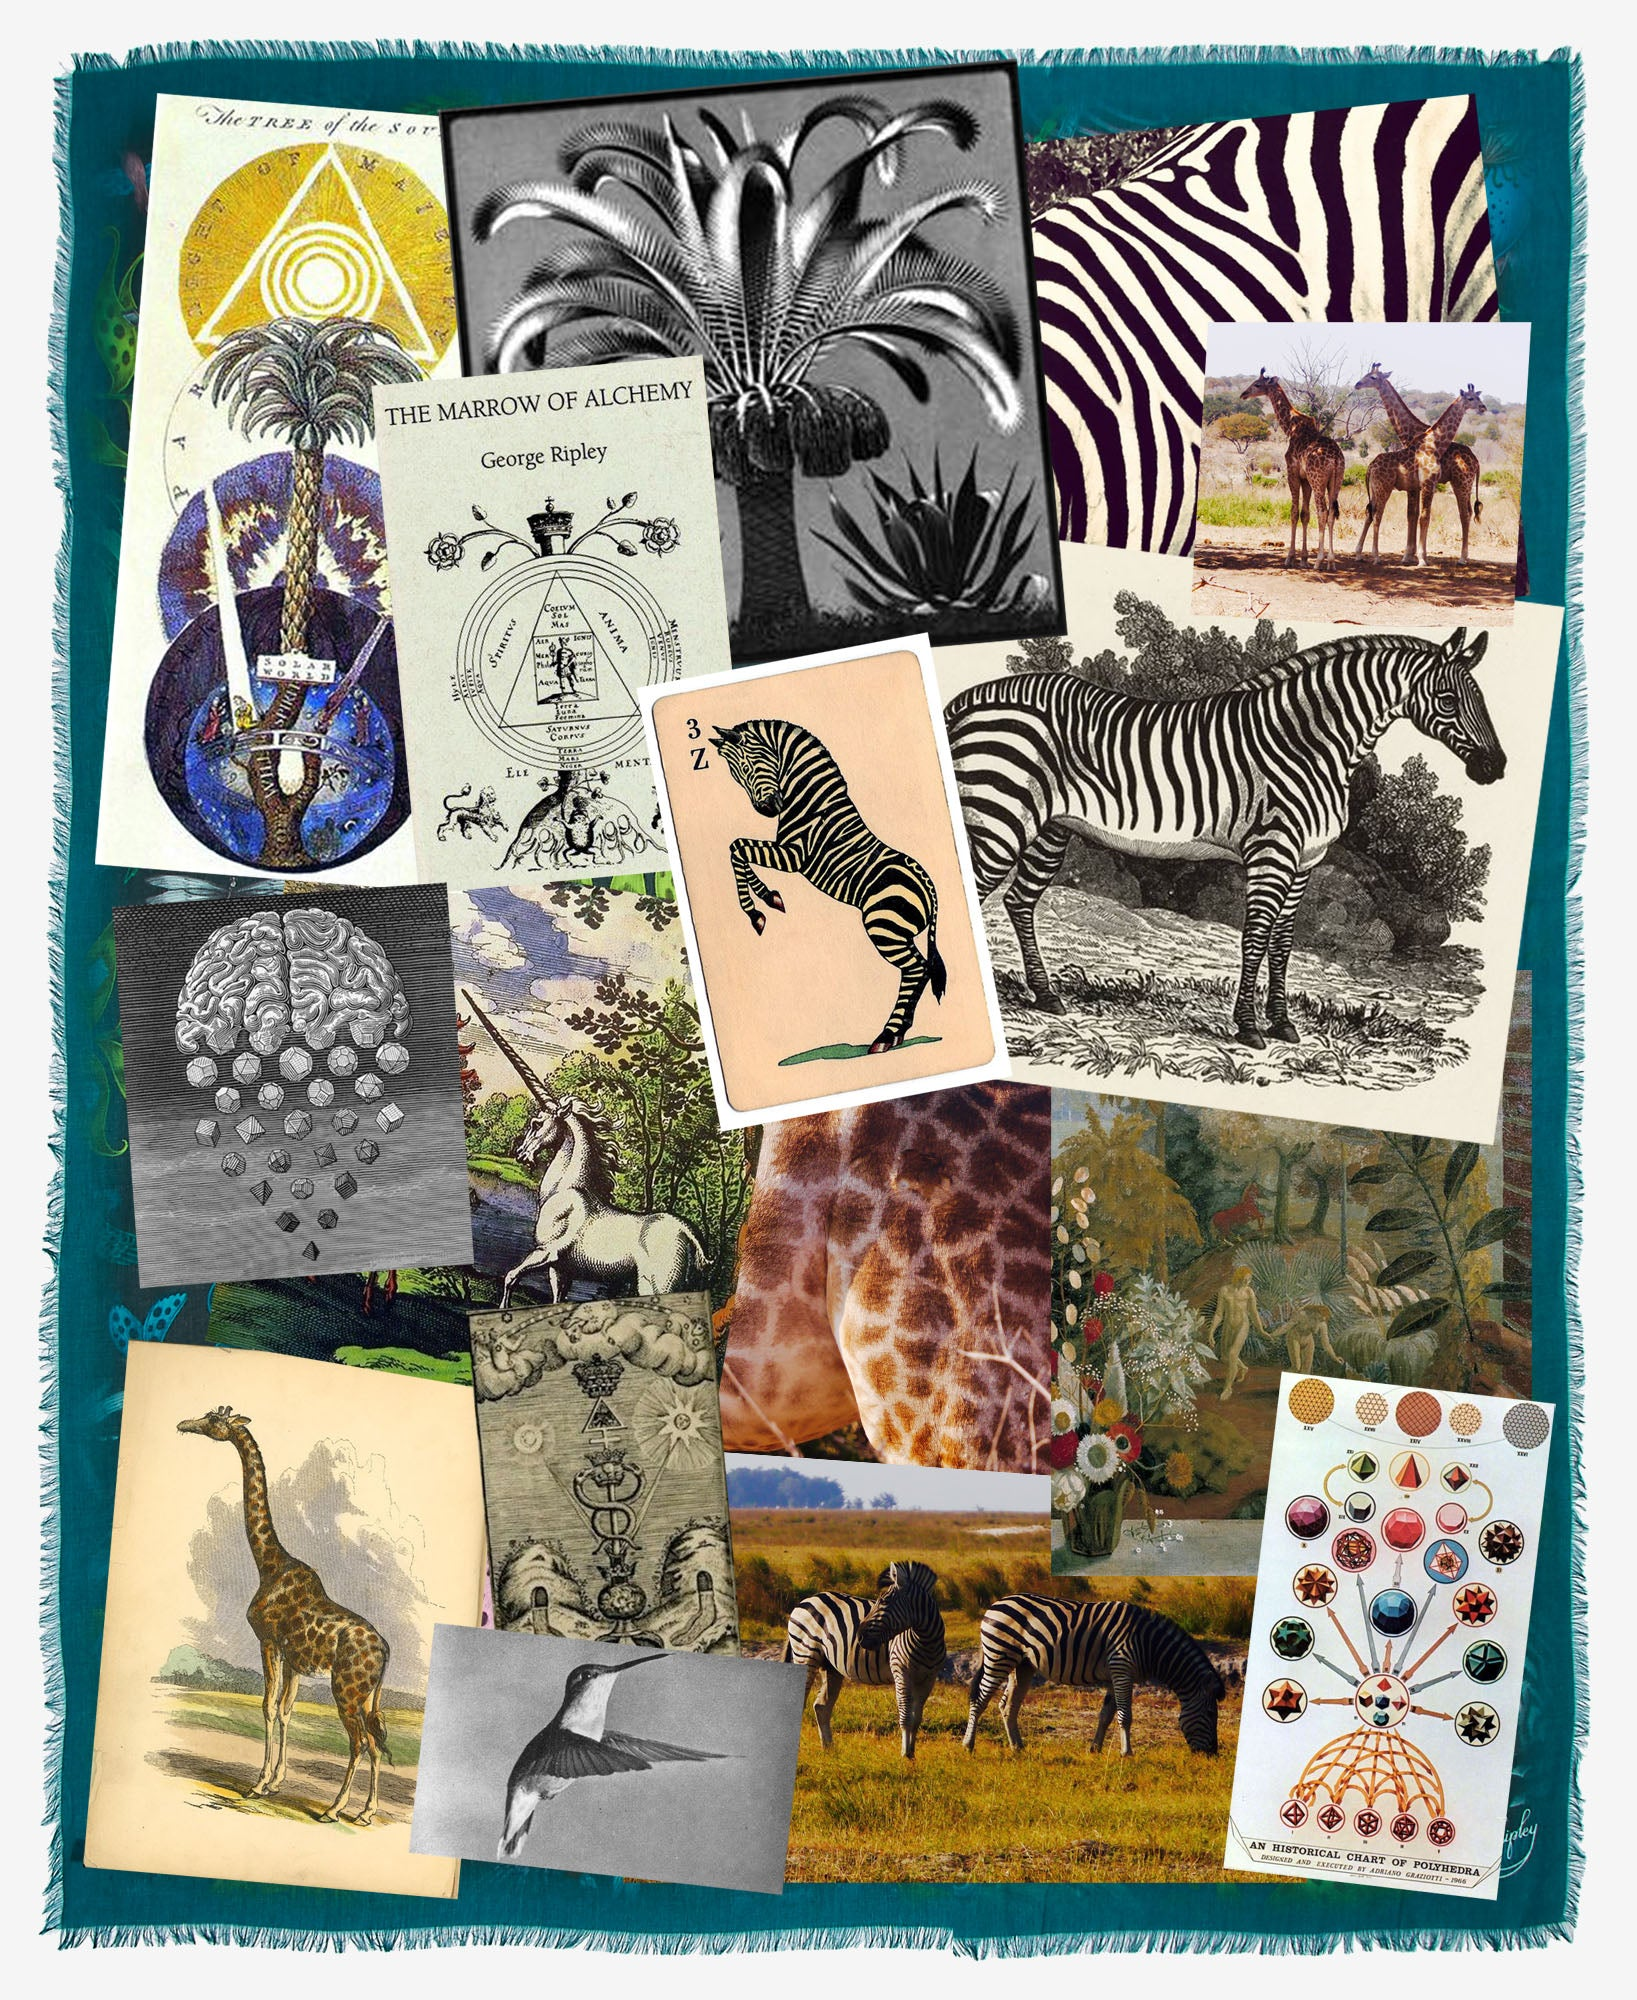 The classic Kruger illustration by Emma J Shipley was inspired by a fantastical safari adventure through South Africa. The creatures and details within the design were influenced by Emma's travels as well as her love of fantasy, mythology and ancient theory